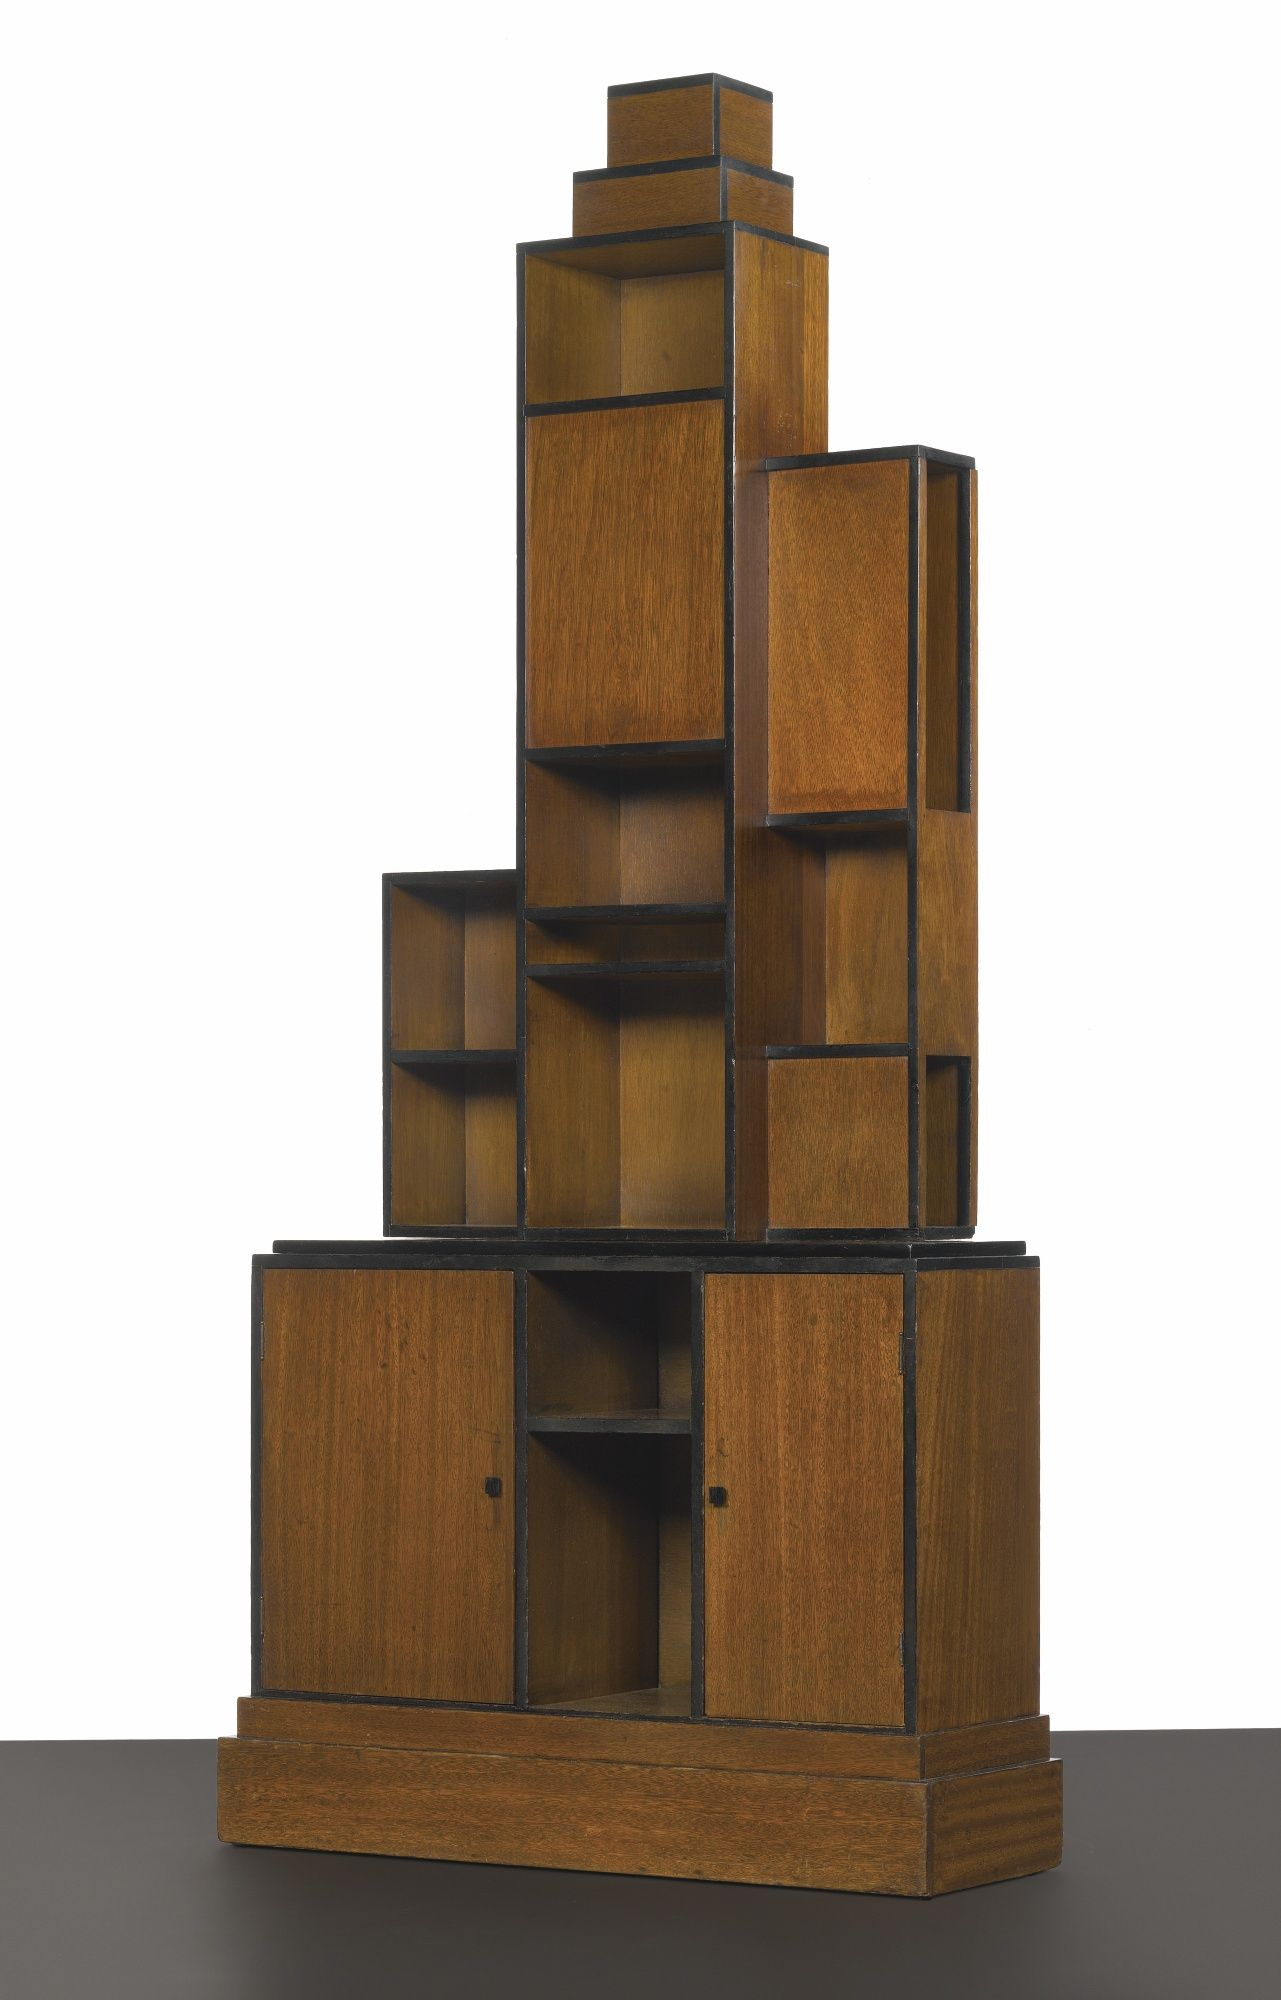 PAUL T. FRANKL SKYSCRAPER BOOKCASE FROM THE LIBRARY OF